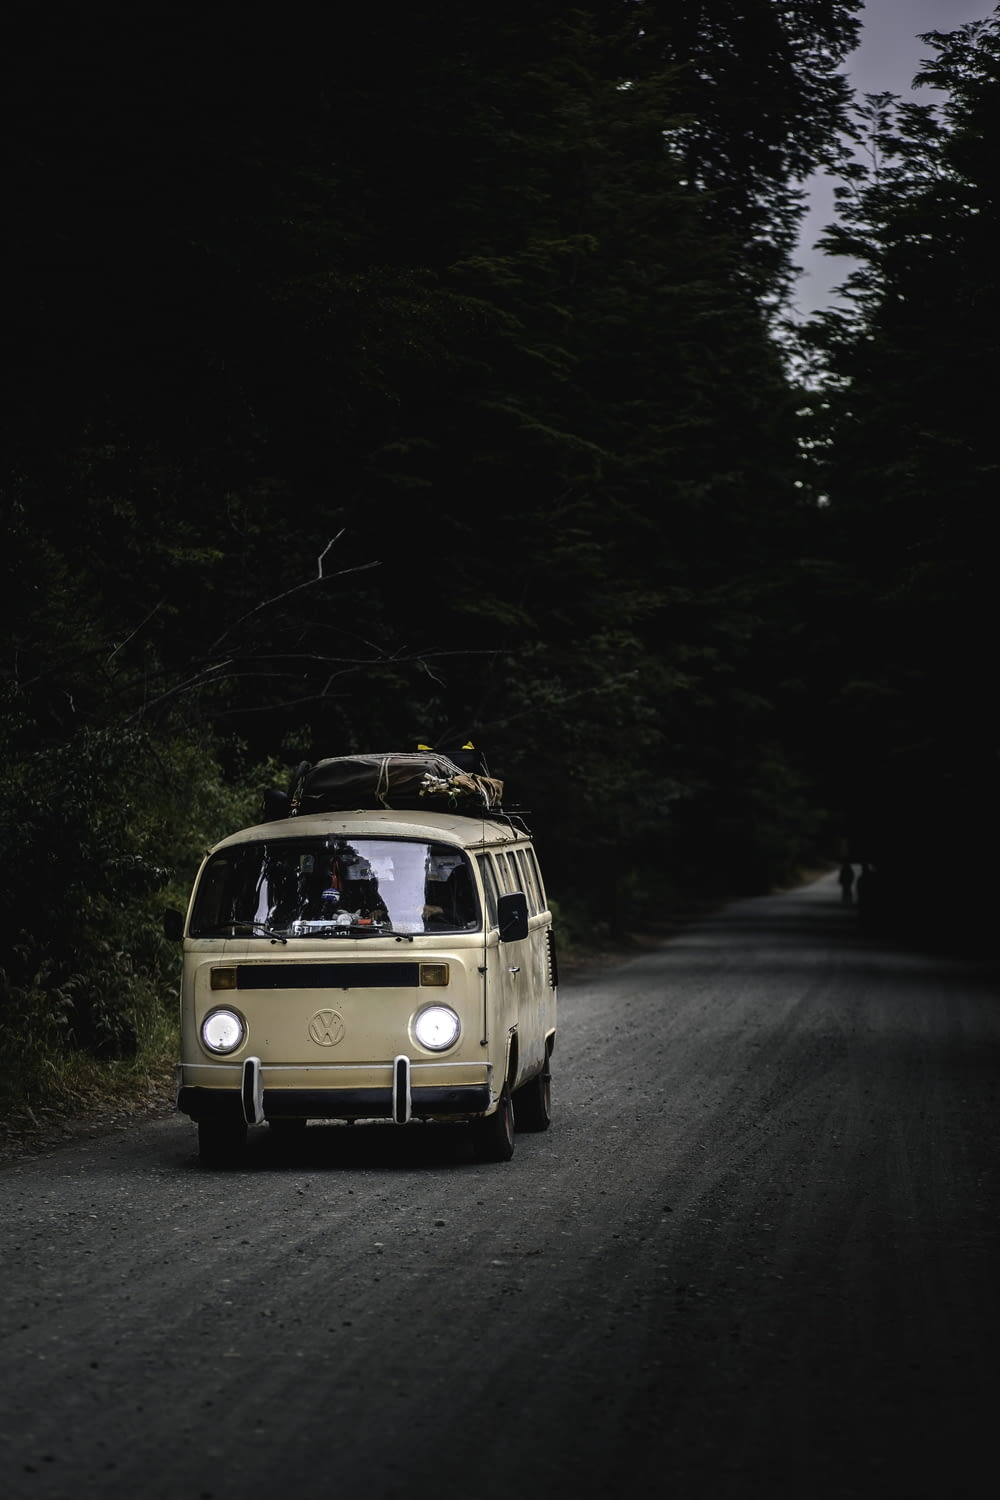 white volkswagen t-2 on road surrounded by trees